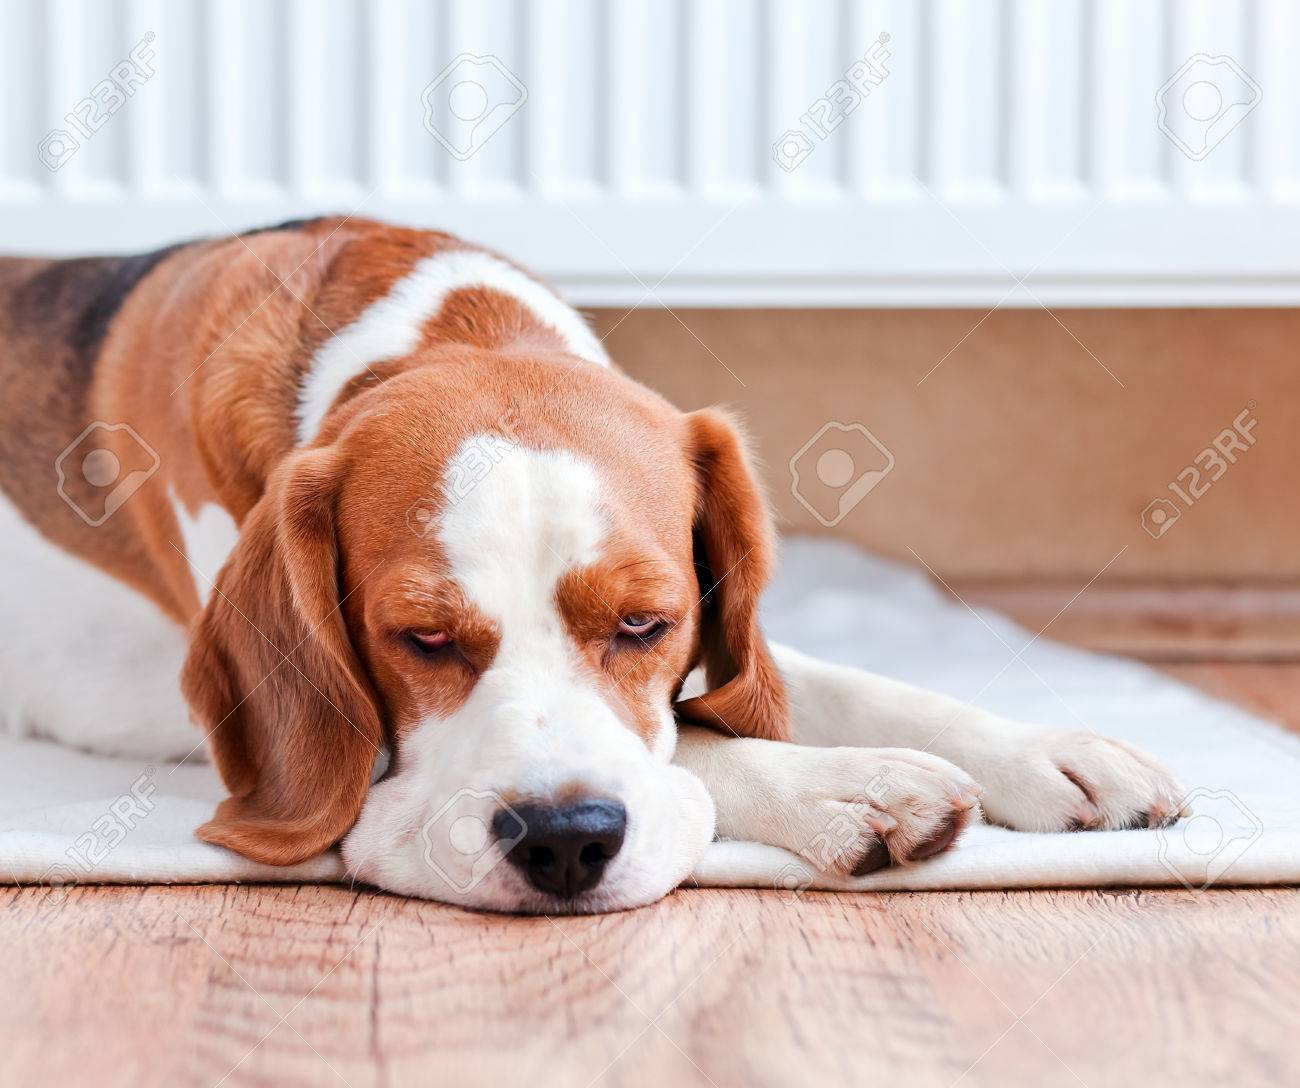 The dog has a rest on wooden to a floor near to a warm radiator Stock Photo - 22967402